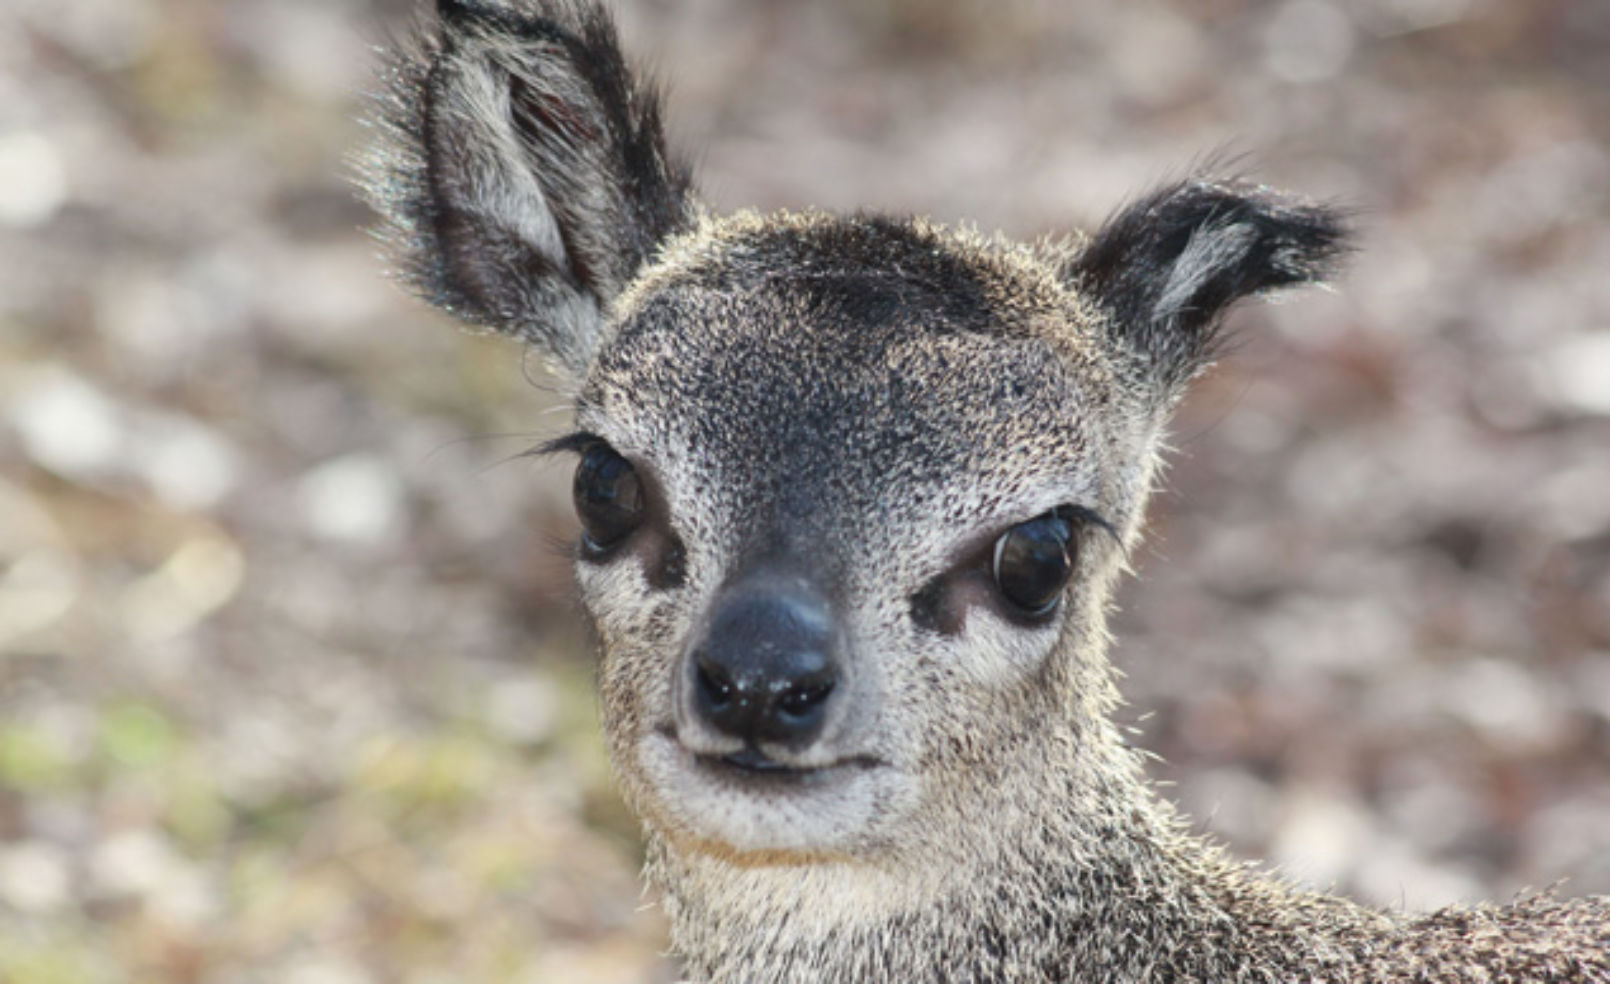 Adorable Zoo Animals You MUST See Budget Travel